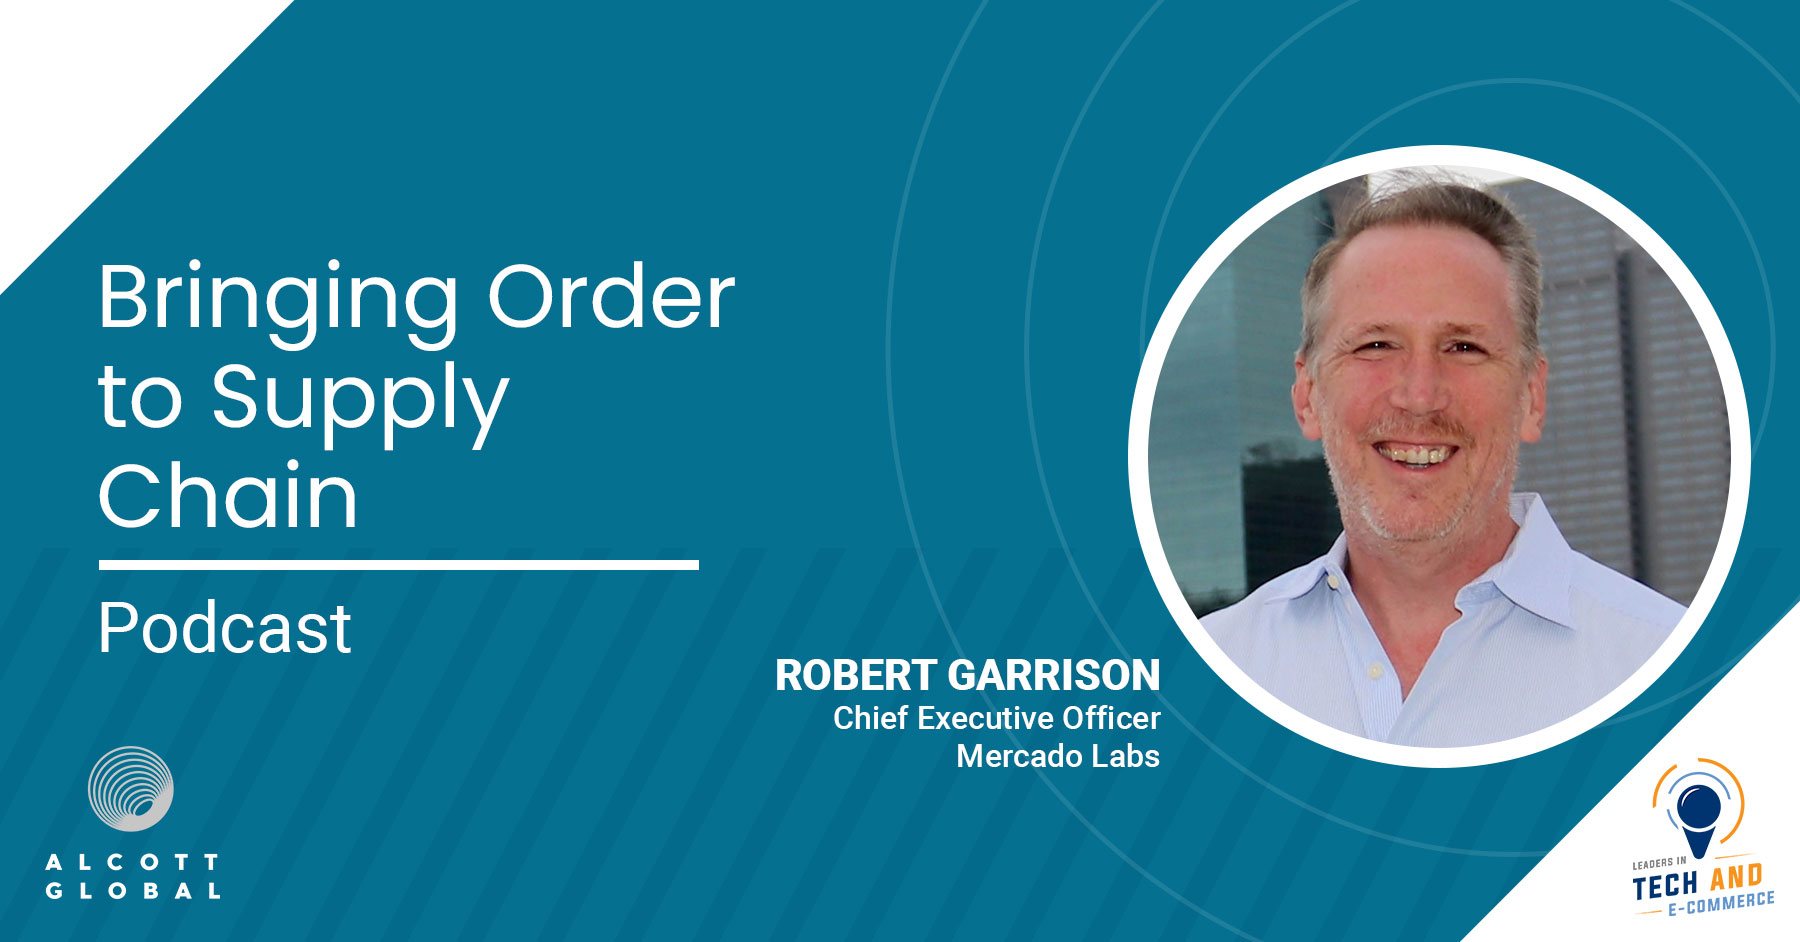 Bringing Order to Supply Chain with Robert Garrison CEO of Mercado Labs Featured Image